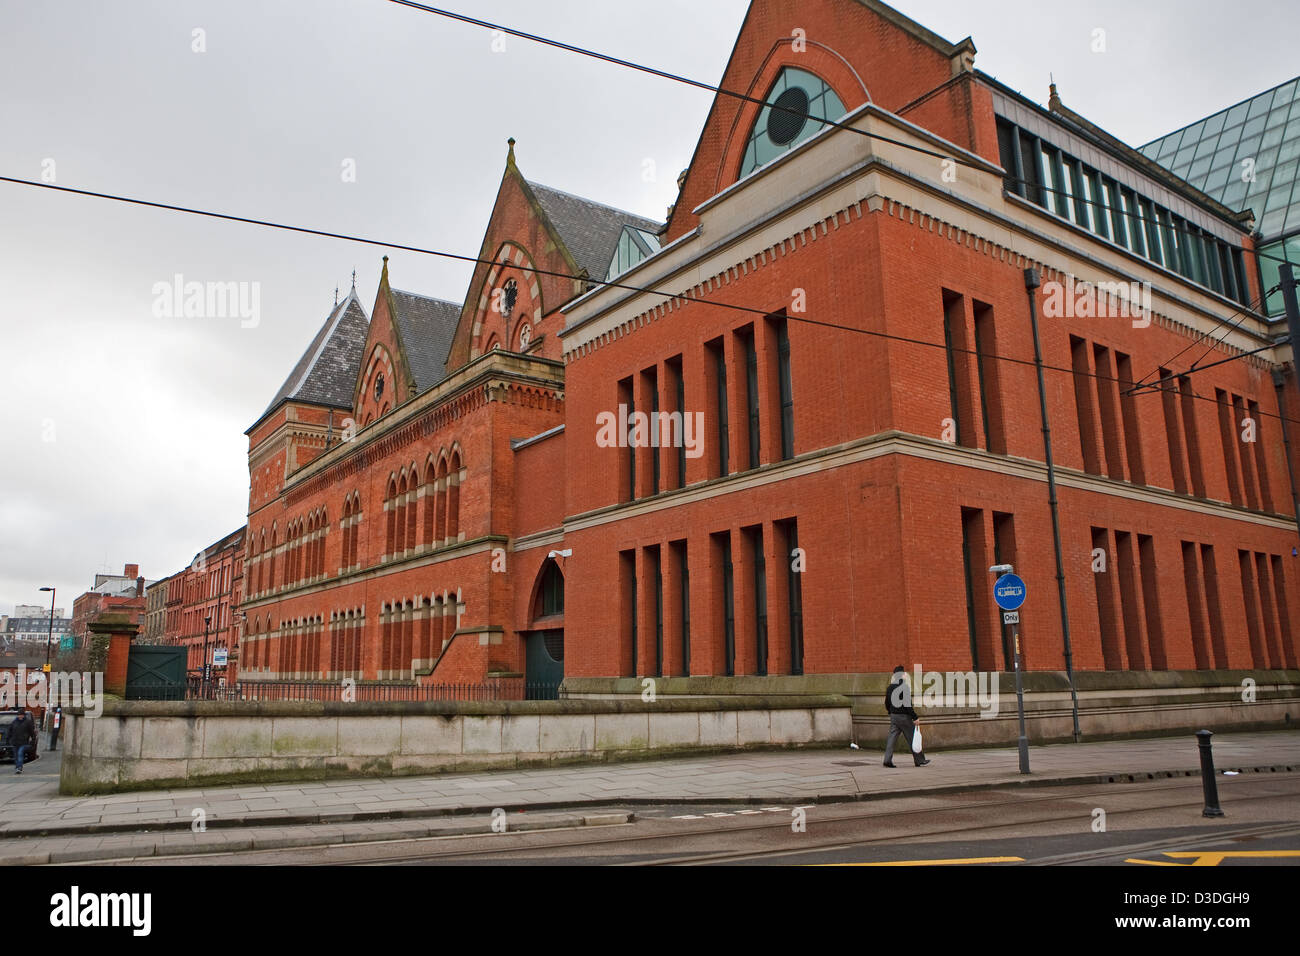 The Crown Court Of Manchester England Stock Photo